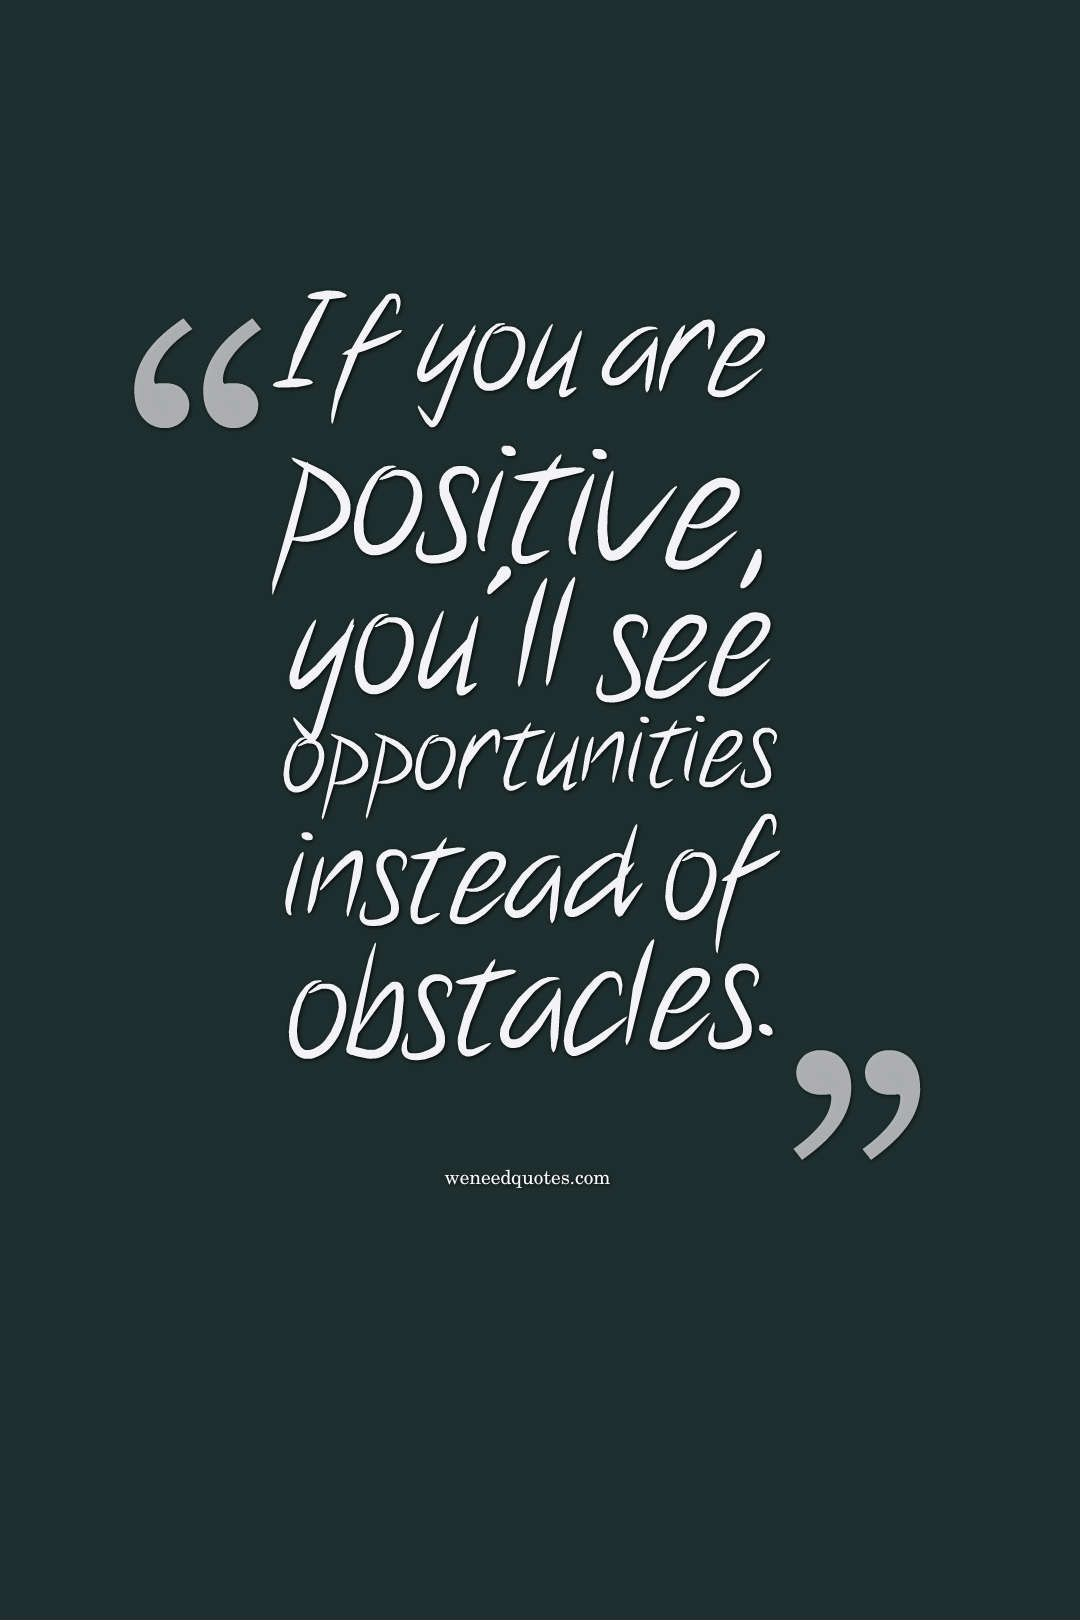 Top 20 Positive Quotes For 2019 Positivequotes Positivethinkingquotes Positiveenergyquotes Positive Energy Quotes Positive Quotes For Teens Postive Quotes